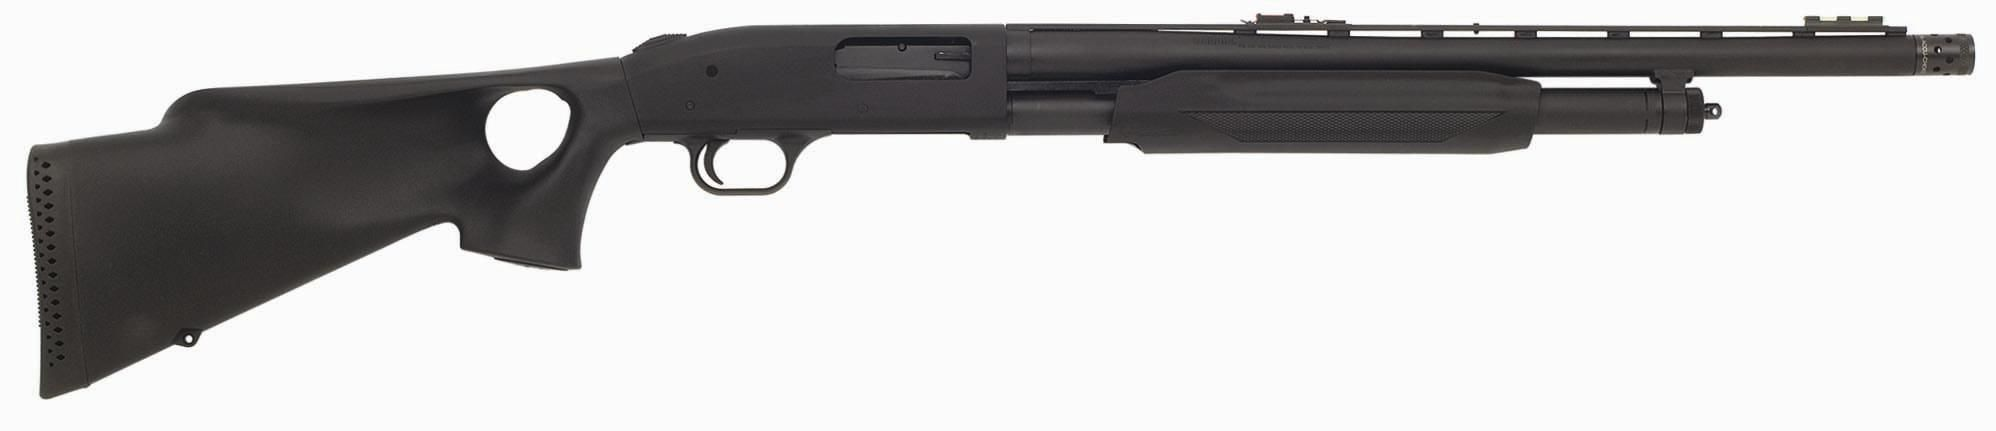 Mossberg 500 Synthetic/Thumbhole Turkey Series $500 | Survival